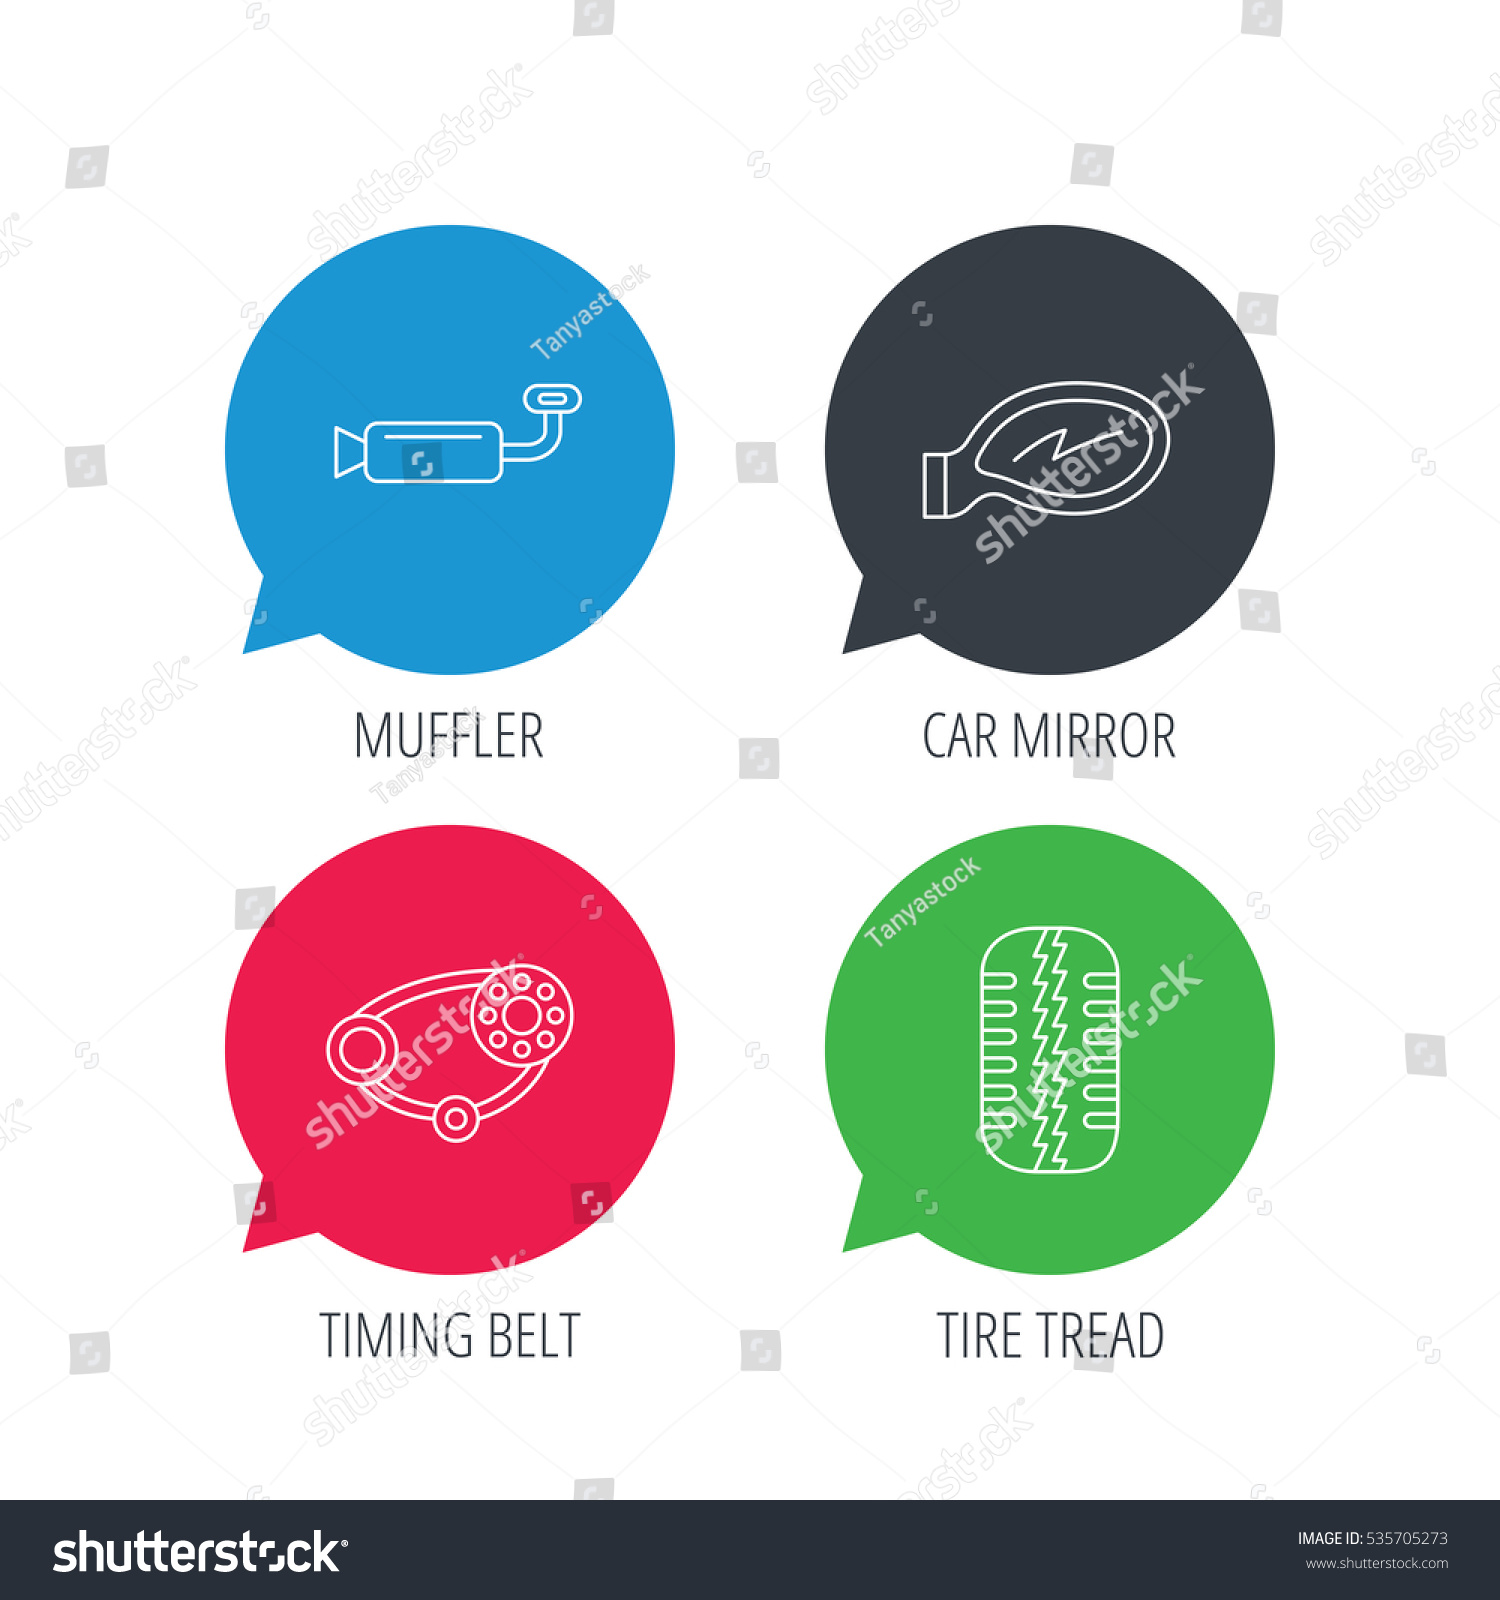 Colored Speech Bubbles Tire Tread Car Mirror And Timing Belt Icons Muffler Linear